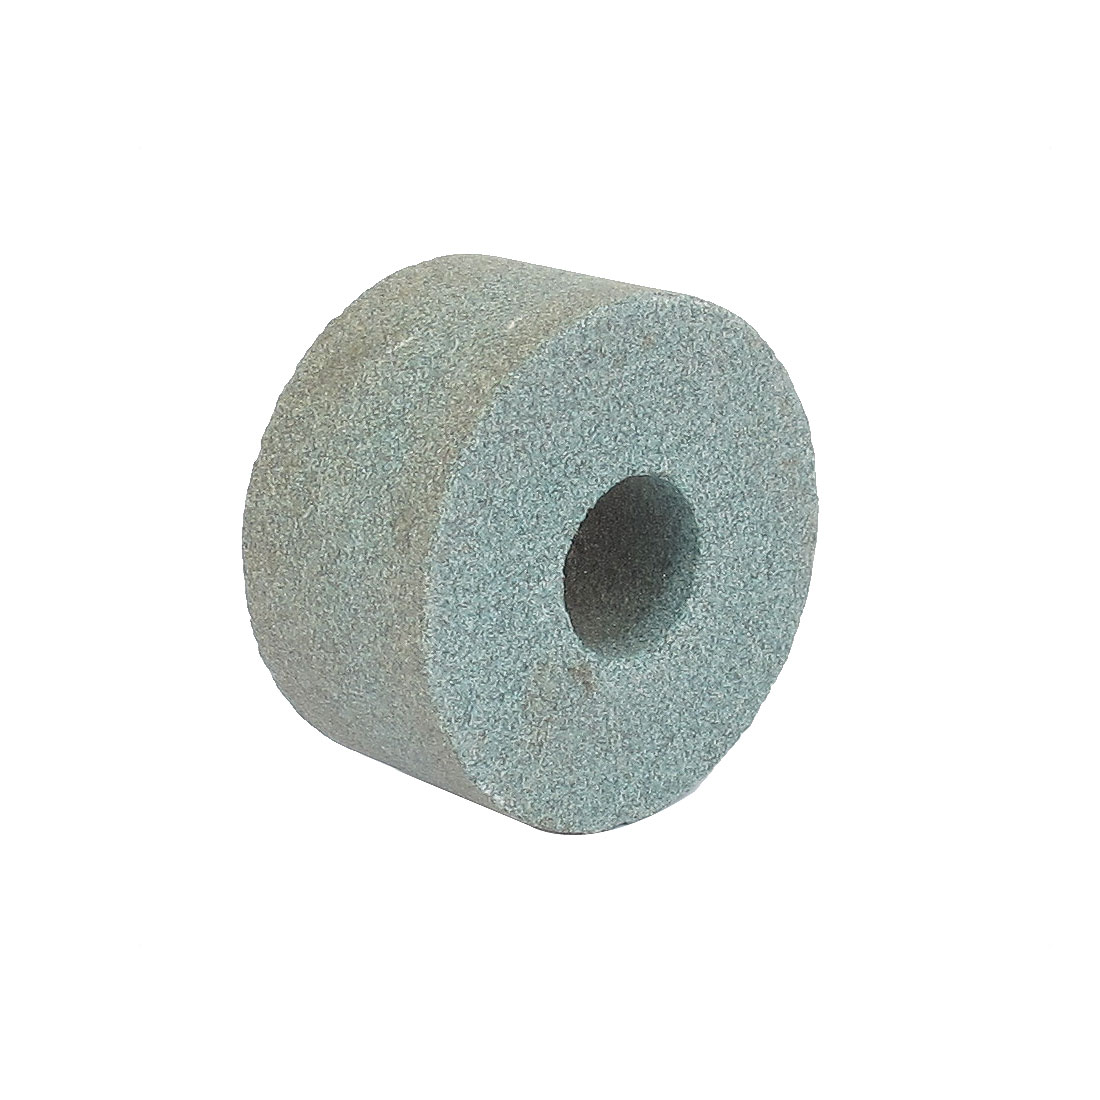 60mm x 32mm x 20mm Carborundum Abrasives Cylinder Cup Grinding Wheel Green